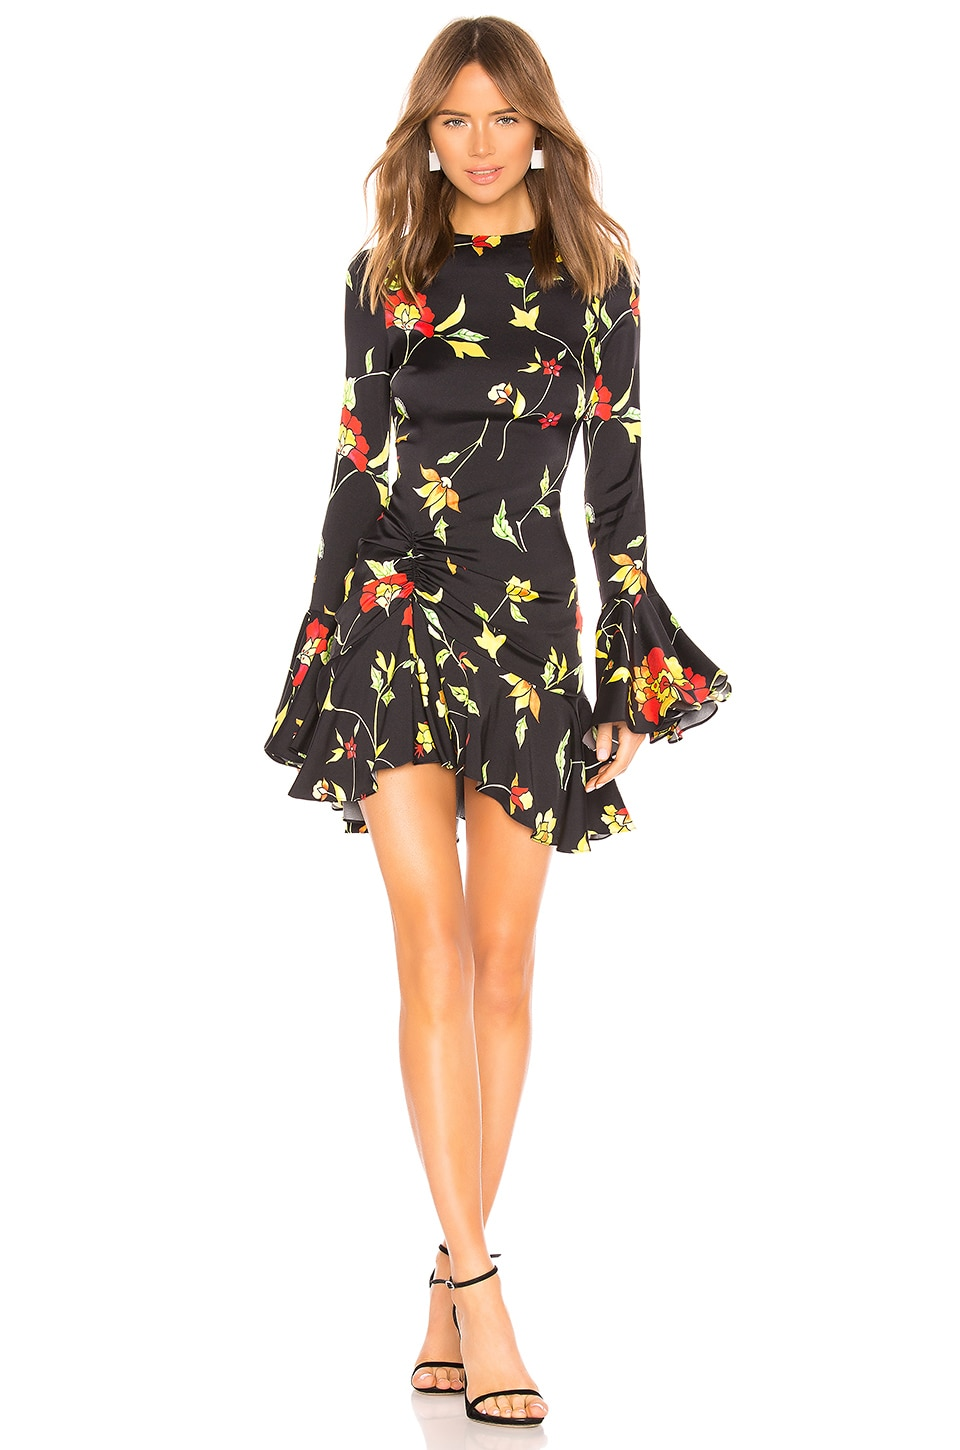 Caroline Constas Monique Mini Dress in Black Multi